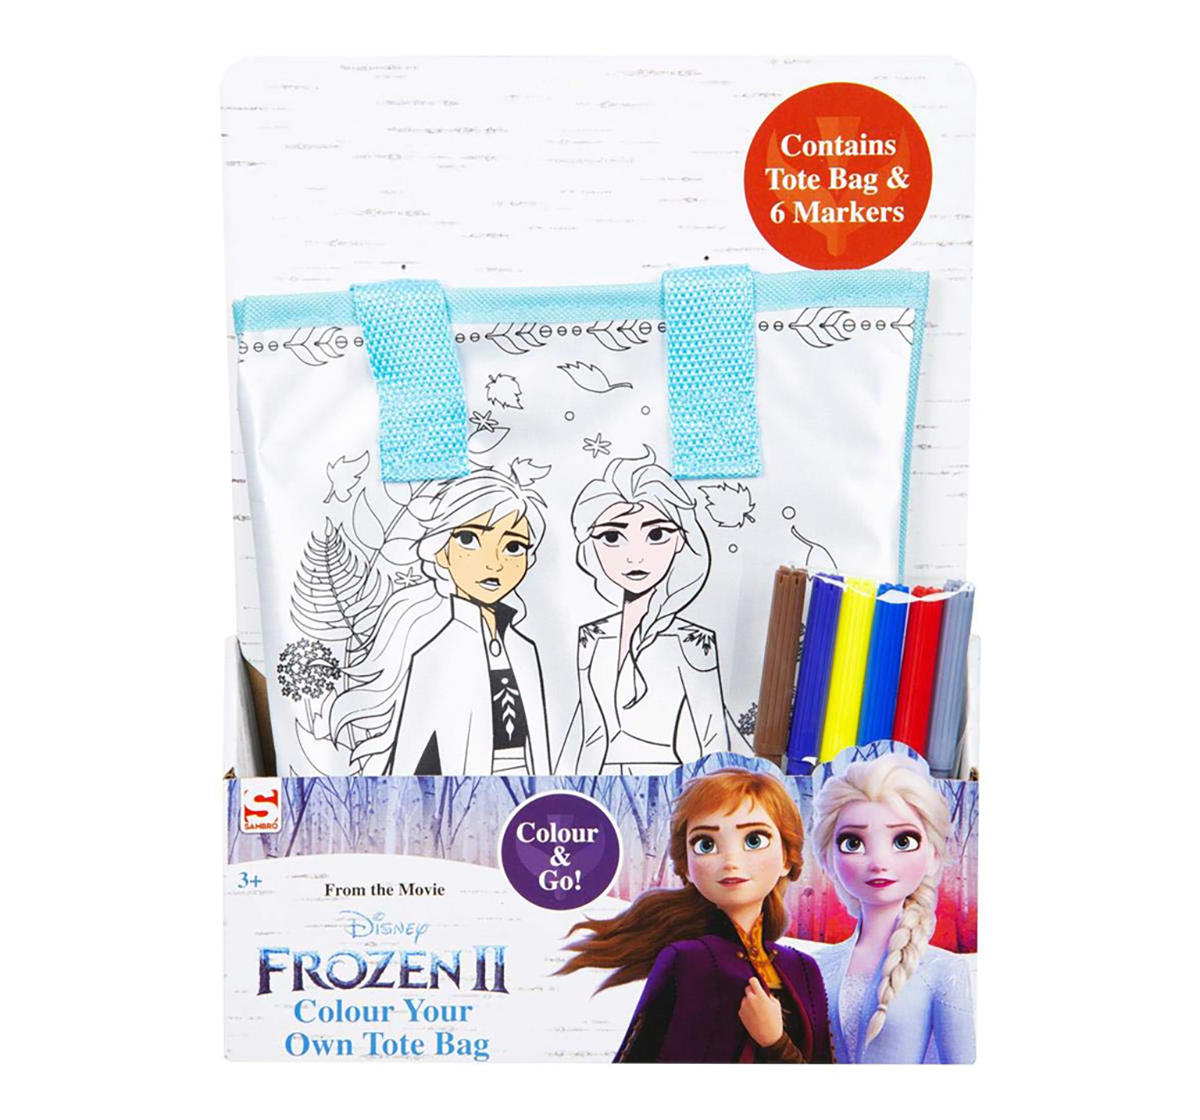 Disney | Disney Frozen2 Colour Your Own Totebag DIY Art & Craft Kits for Girls age 3Y+